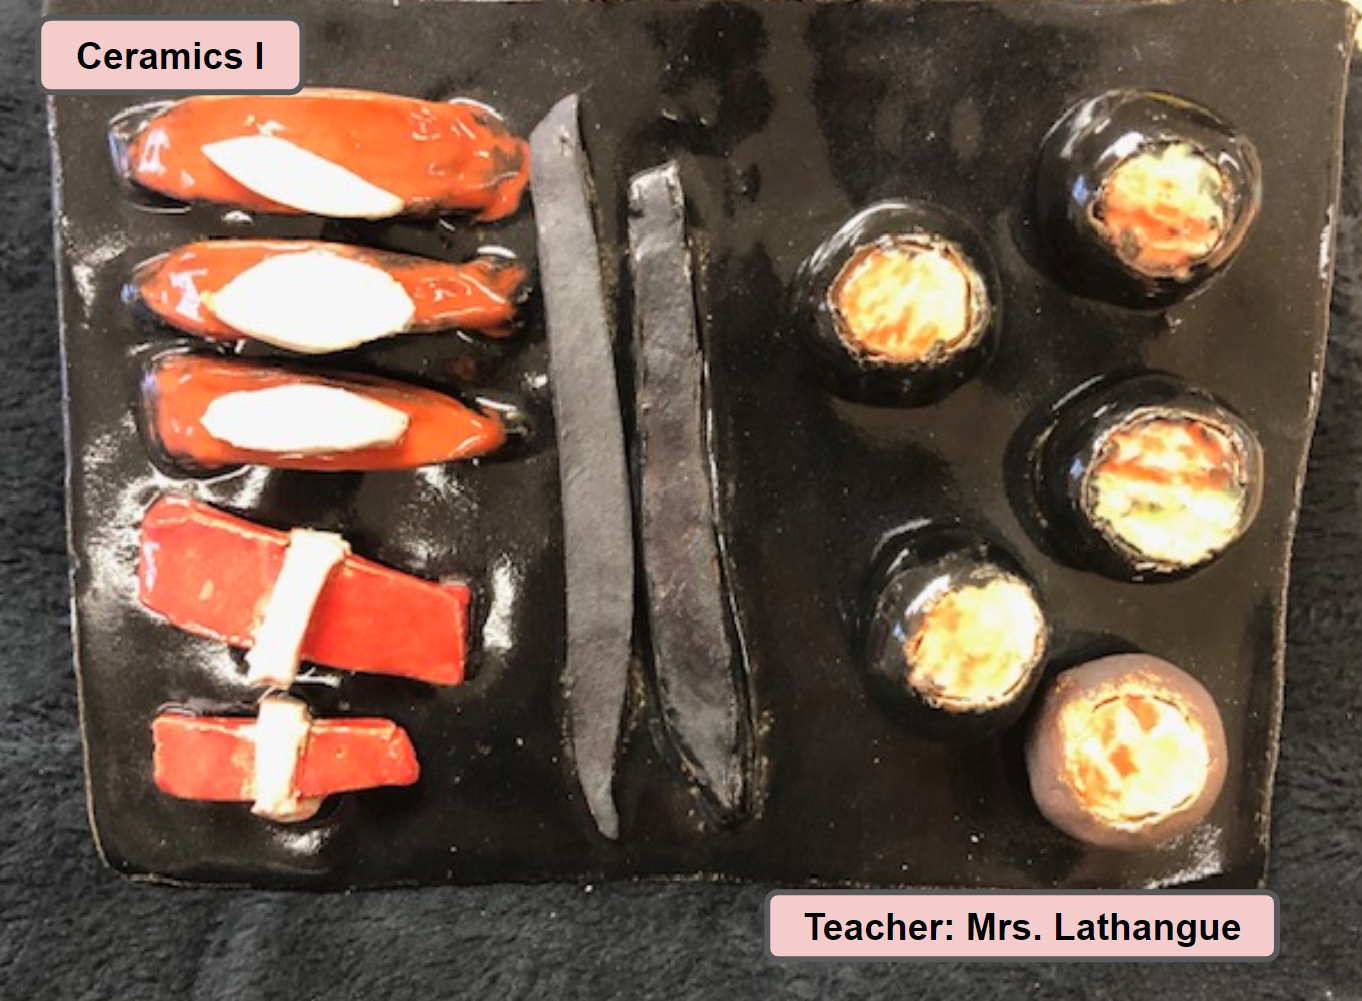 Ceramics One Art Class Project - Teacher Mrs. Lathangue - Sushi Dinner Dinner